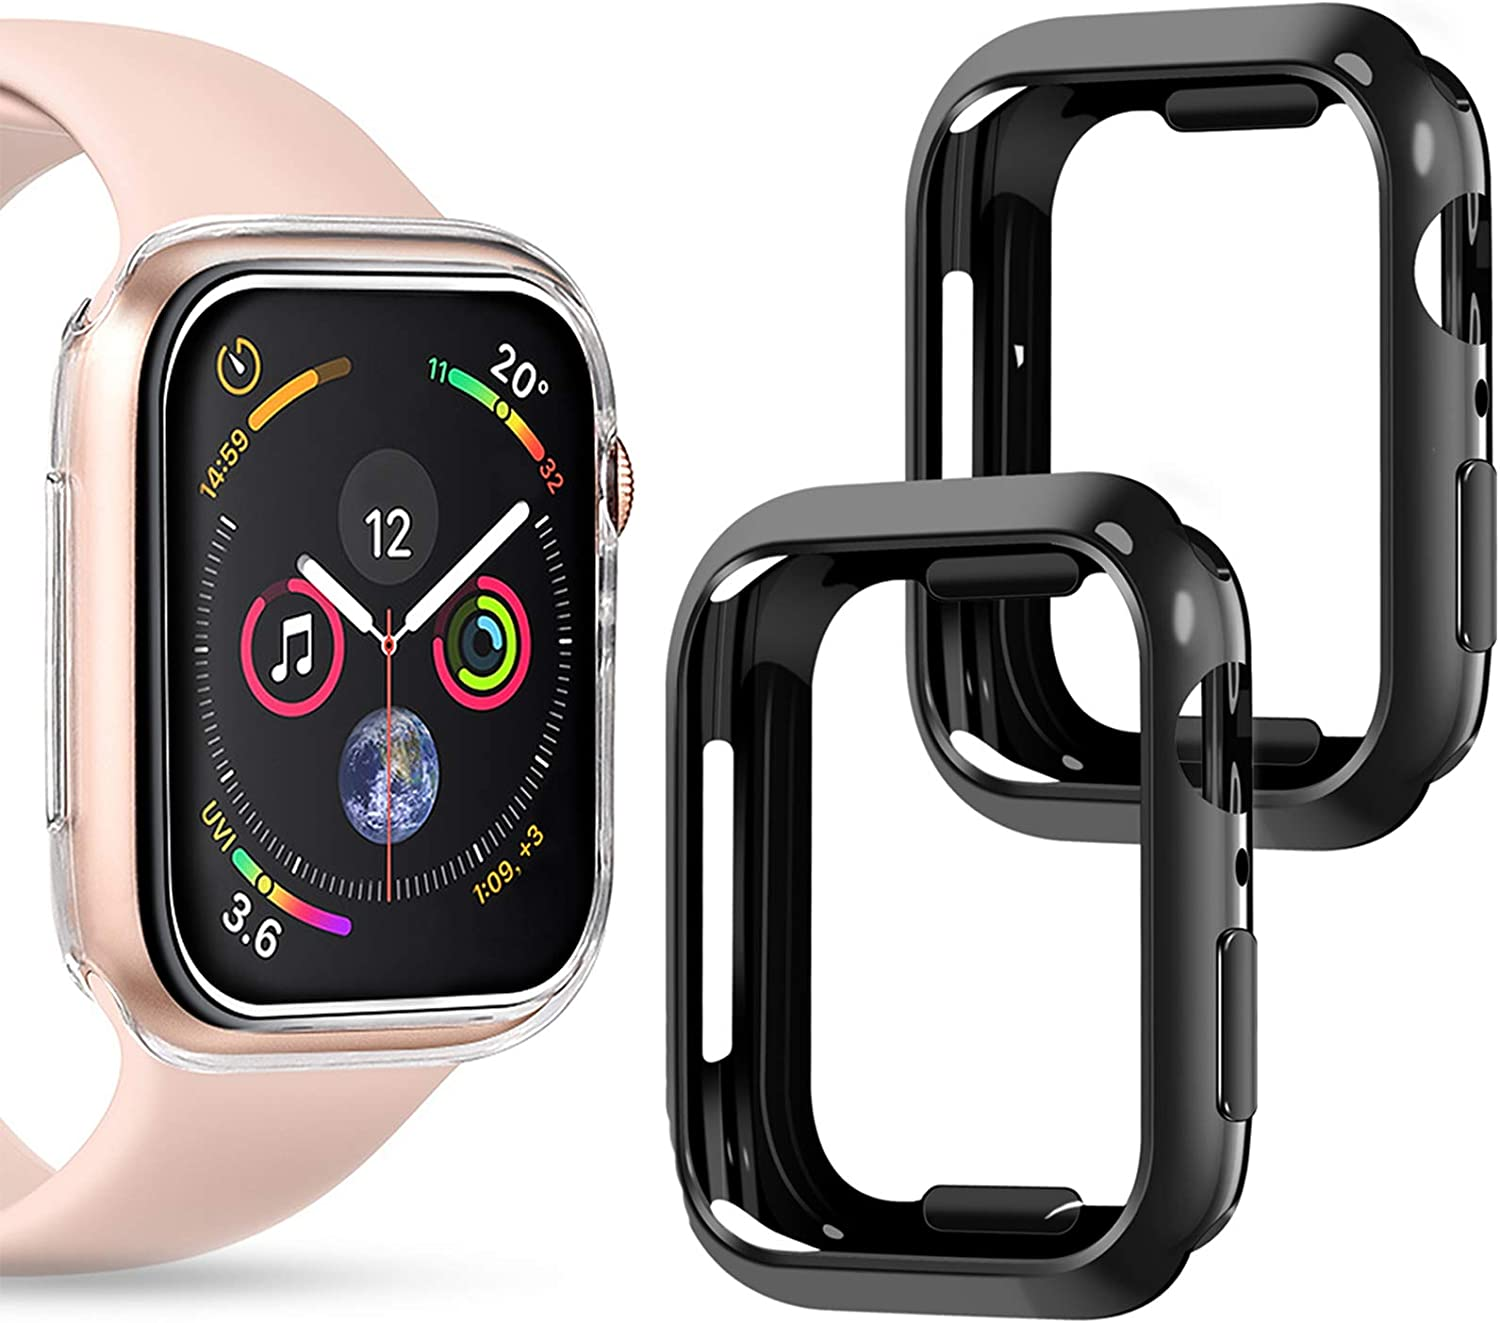 Goton Compatible iWatch Apple Watch Case 44mm SE/Series 6 / Series 5 / Series 4, (2 Packs) Soft TPU Shockproof Case Cover Bumper Protector (Black and Black, 44mm)